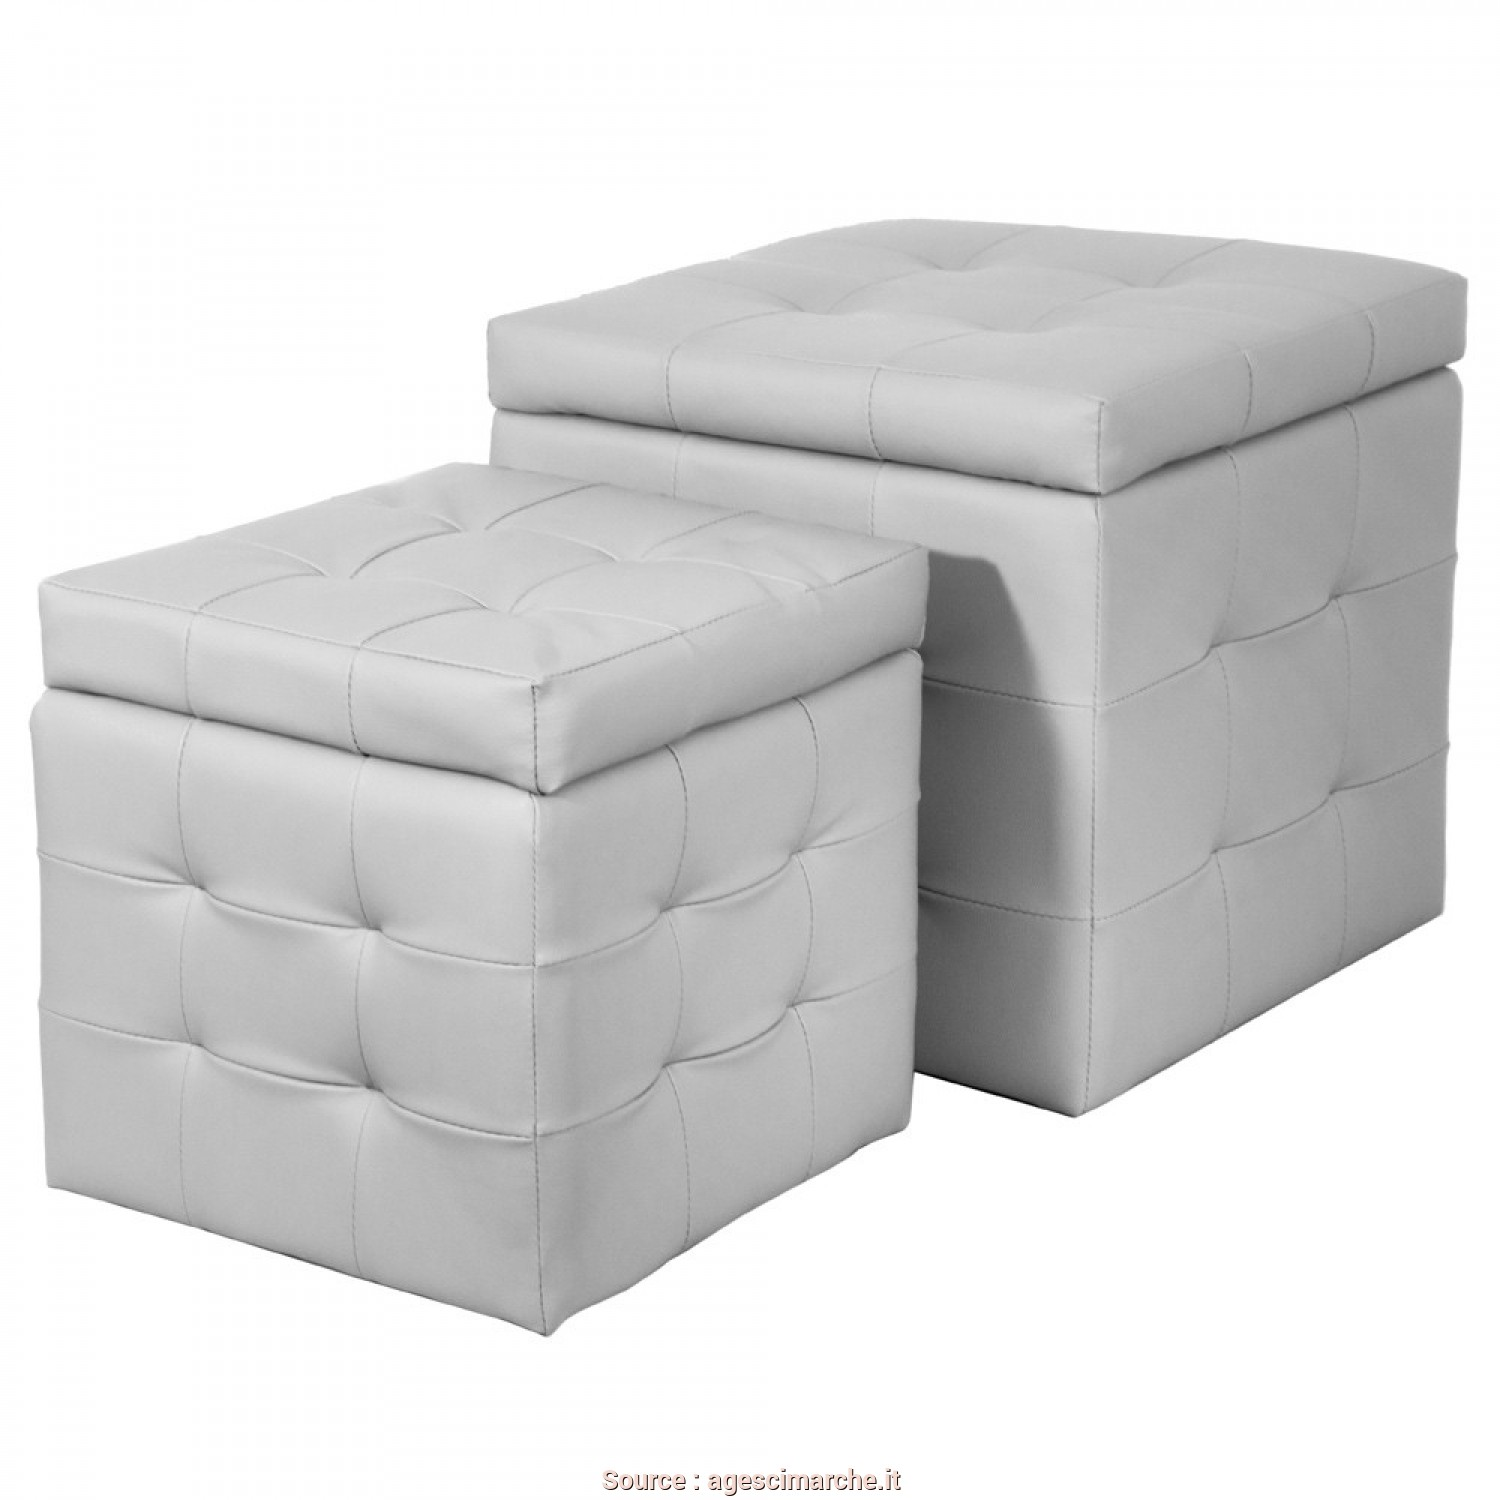 Pouf Contenitore Ecopelle Ikea, Deale X2 Pouf Contenitore Ecopelle Bianco BISCUBELUXURY/B